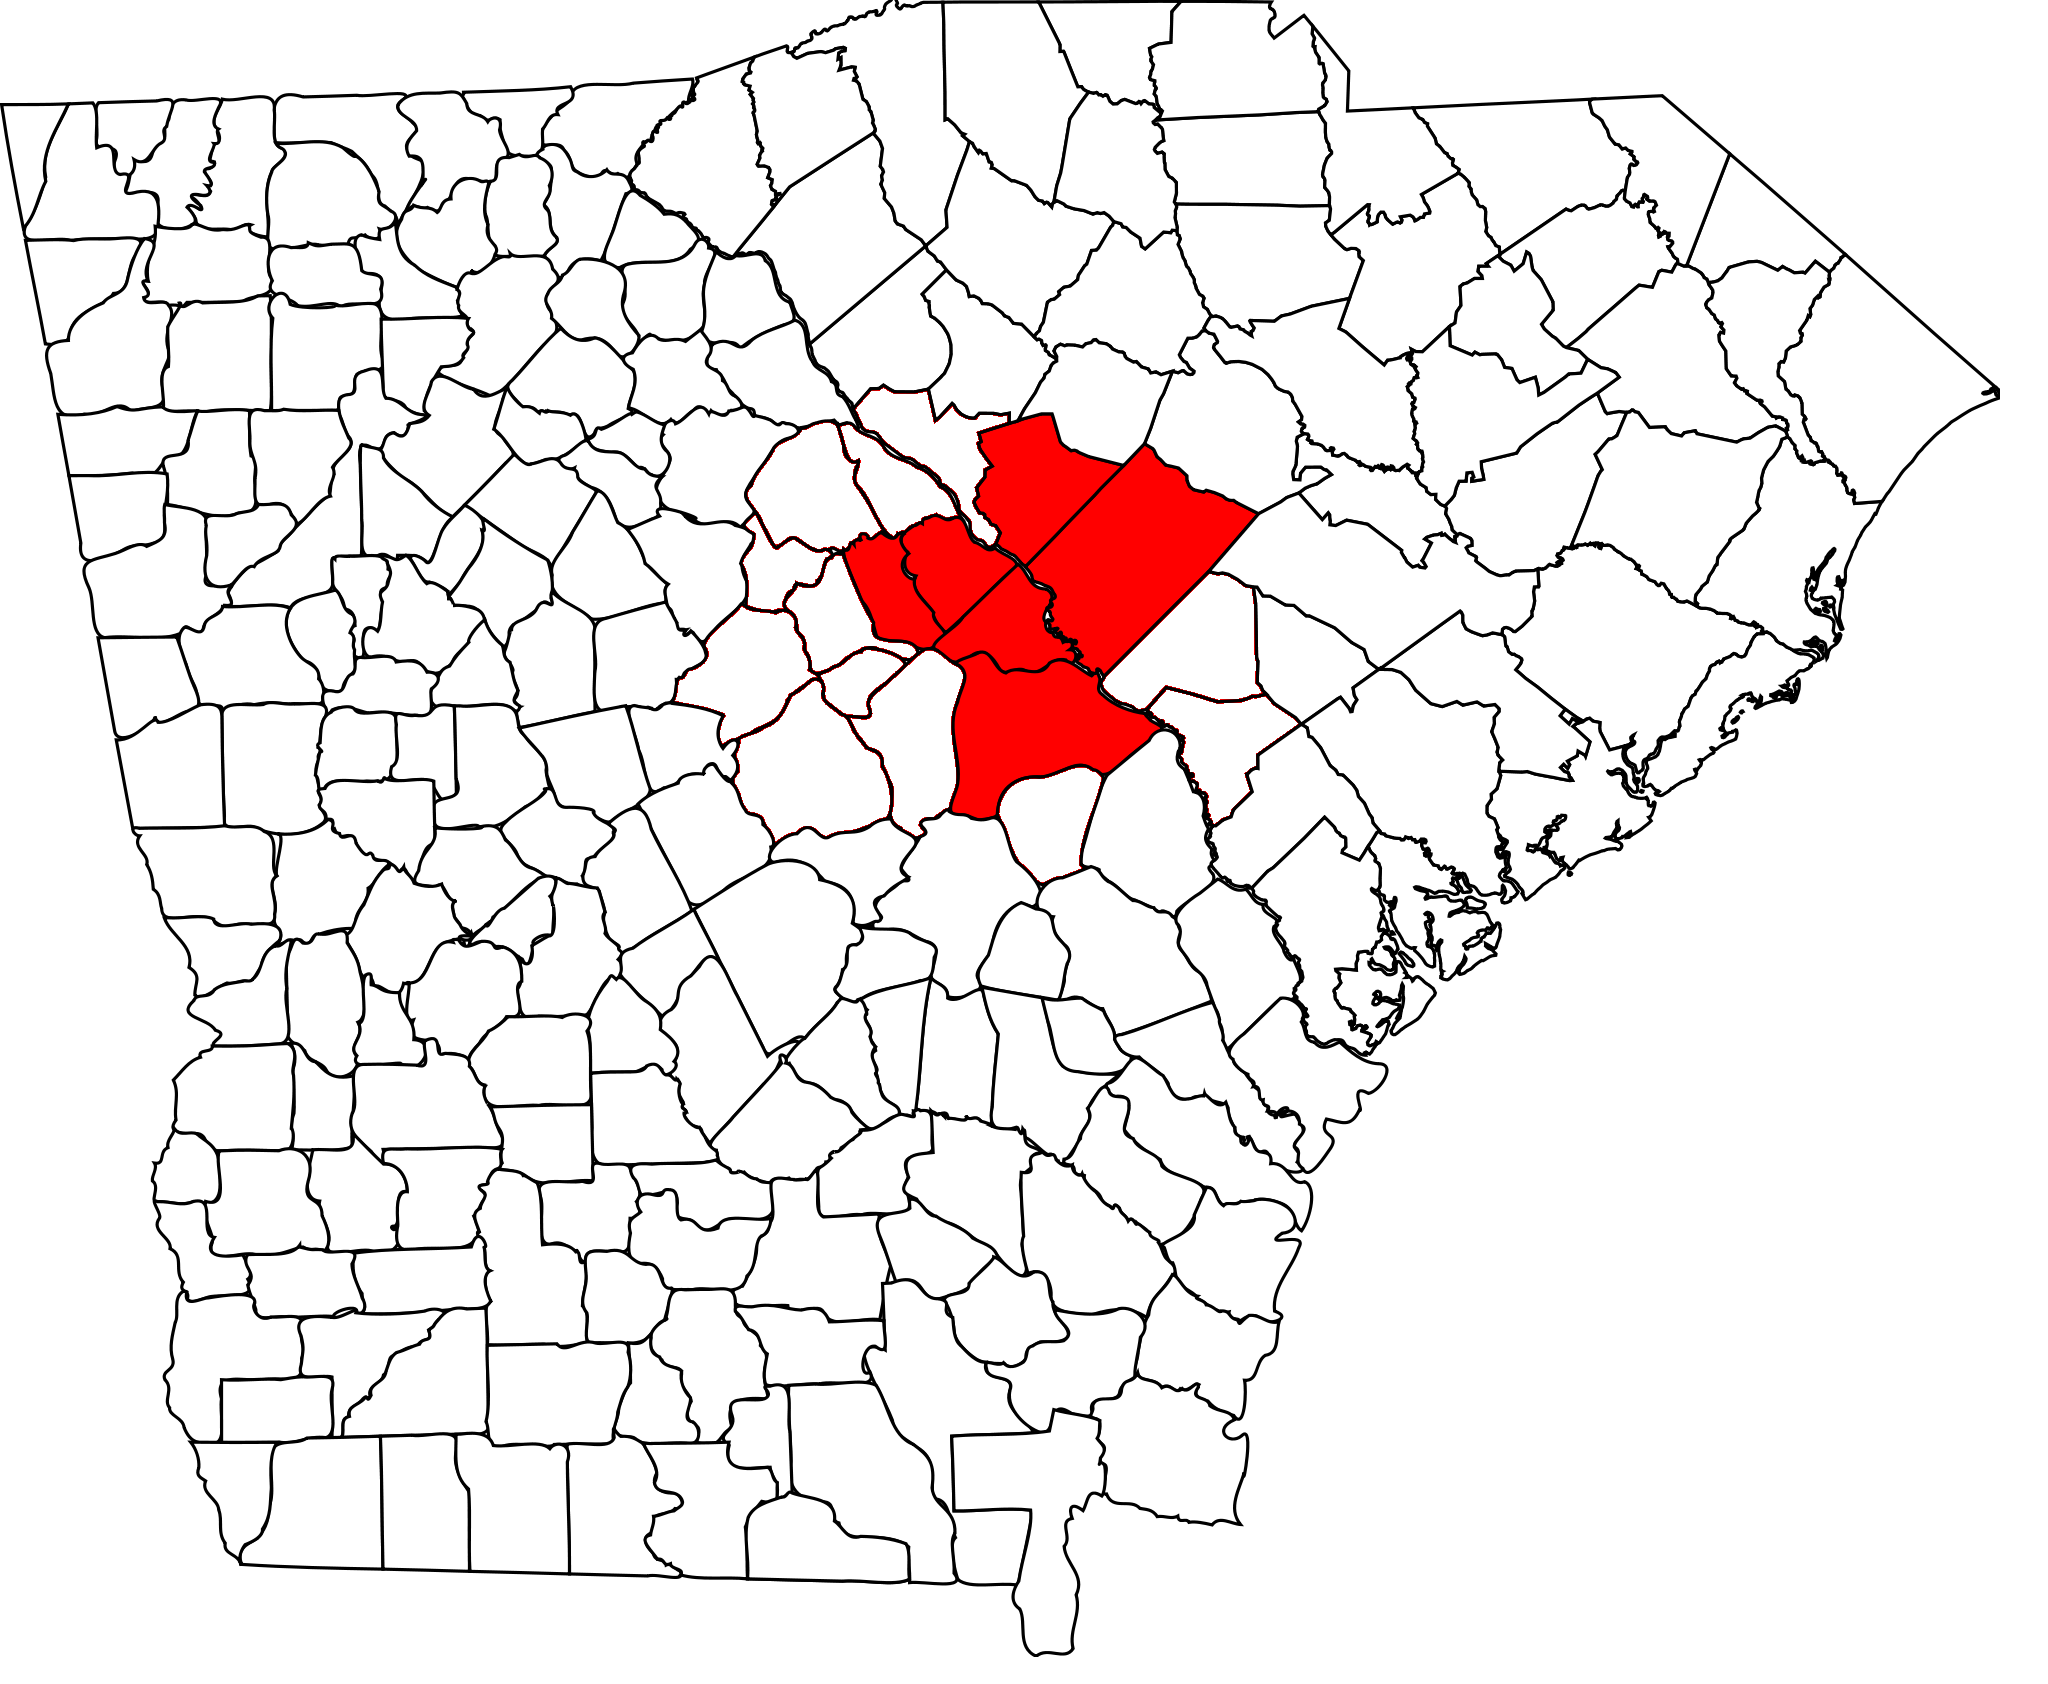 Augusta – Richmond County metropolitan area